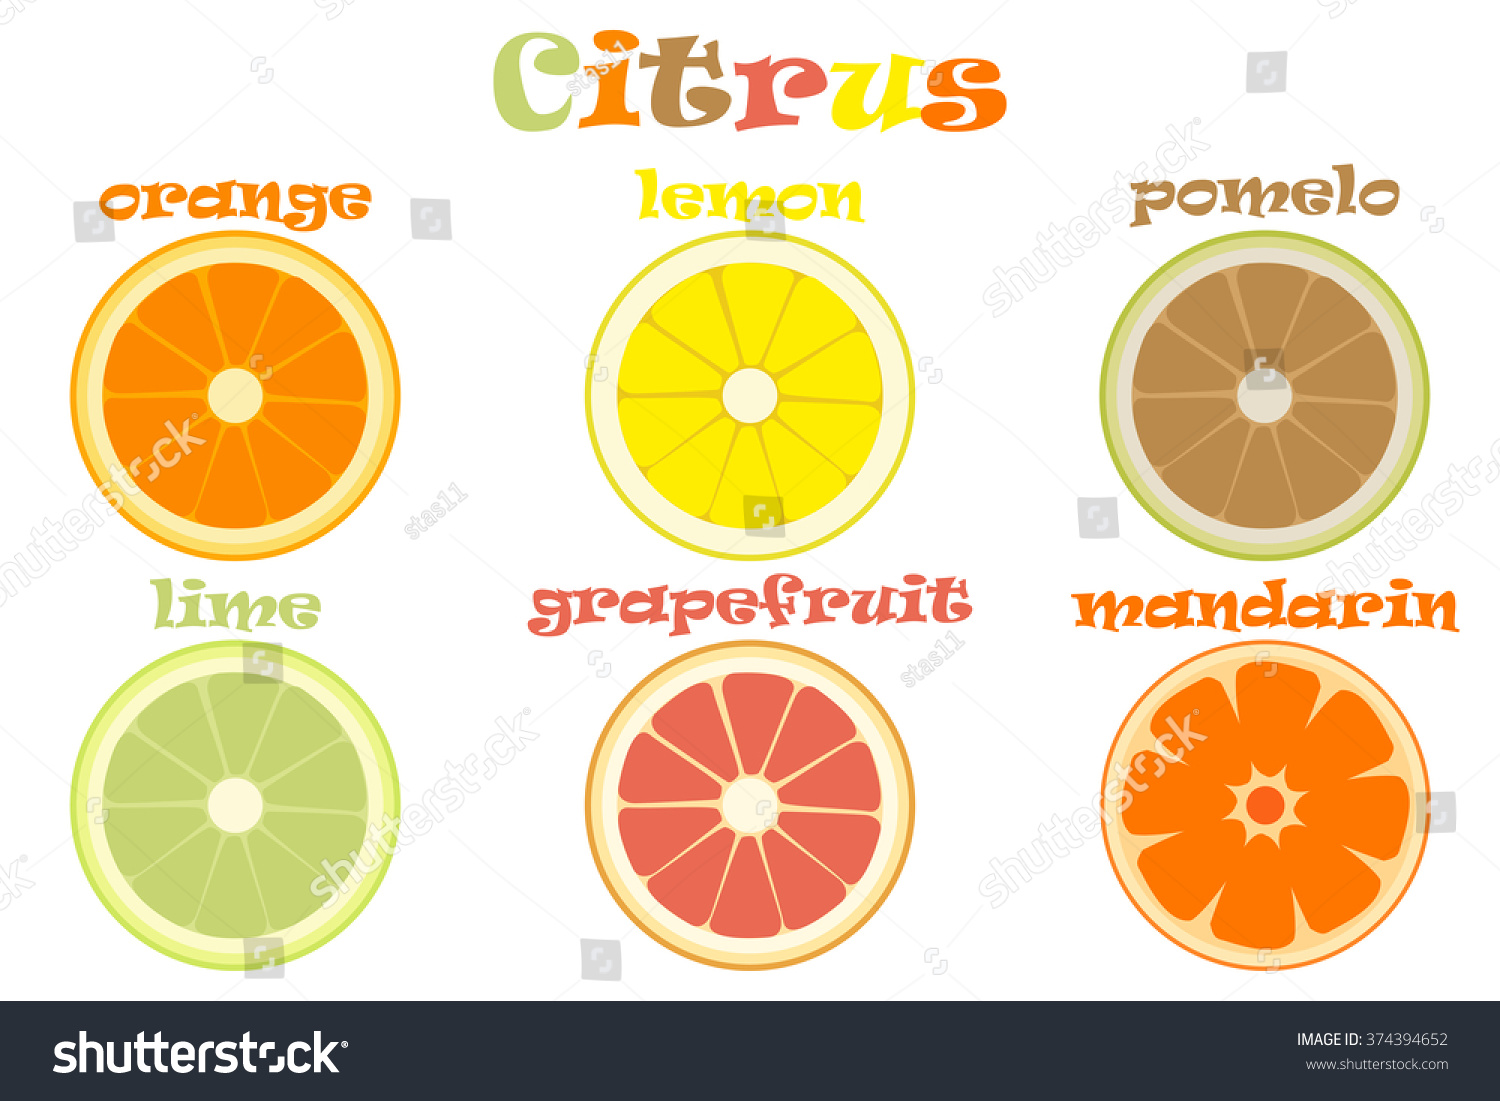 Types Of Fruits With Images - Best Image Atlproms.com